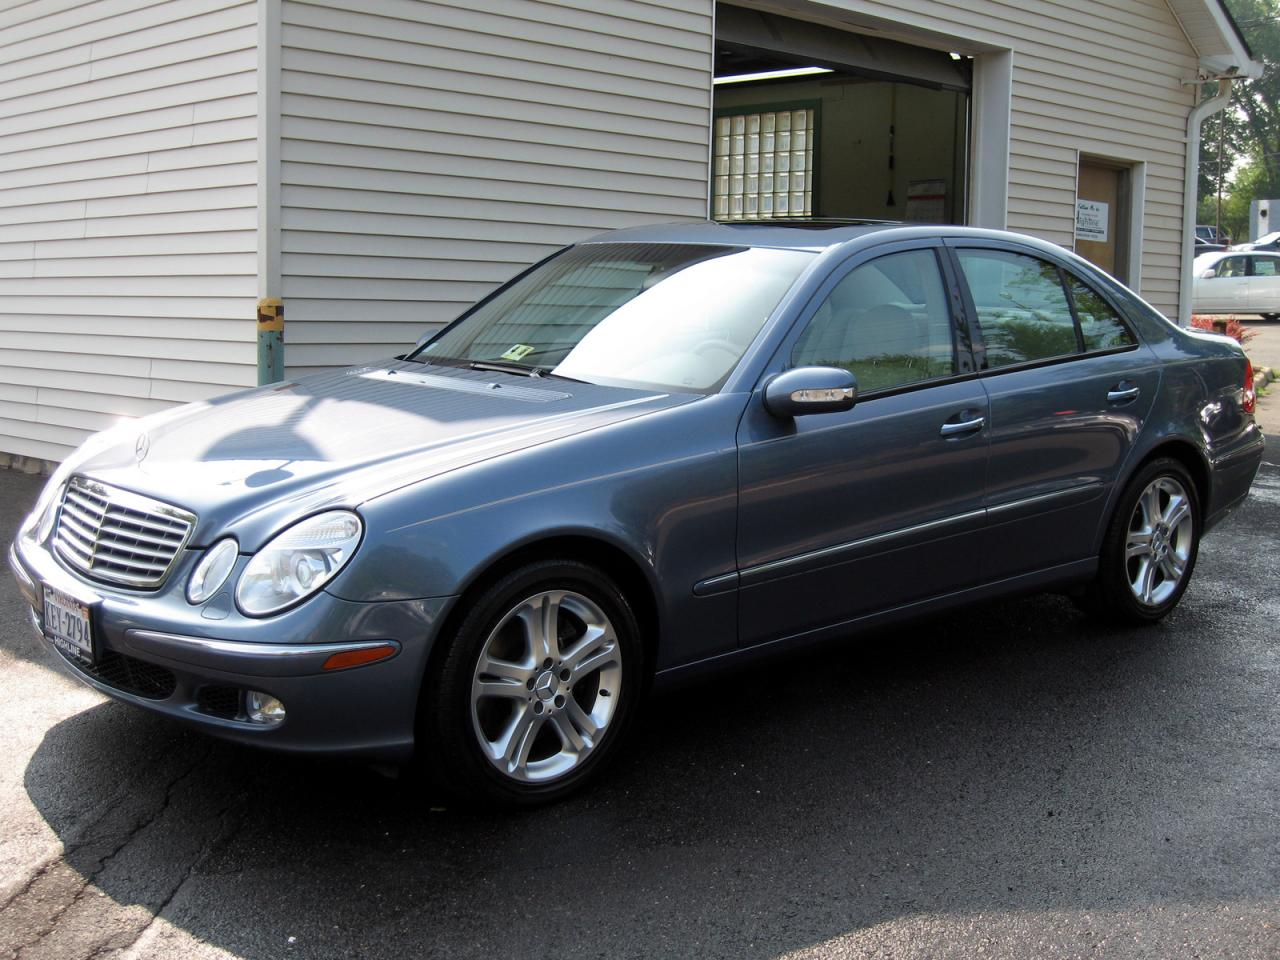 2004 mercedes benz e class information and photos for Facts about mercedes benz